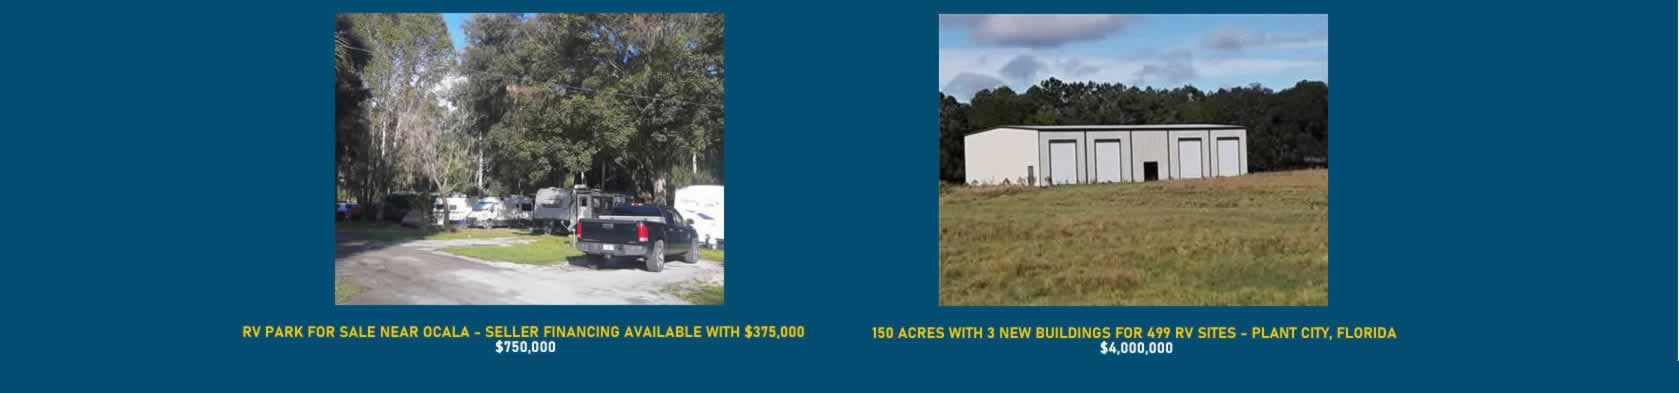 Nude RV Resort / Clothing Optional Resort For Sale In Florida- over 85  Units - Cash Cow! $2,000,000!